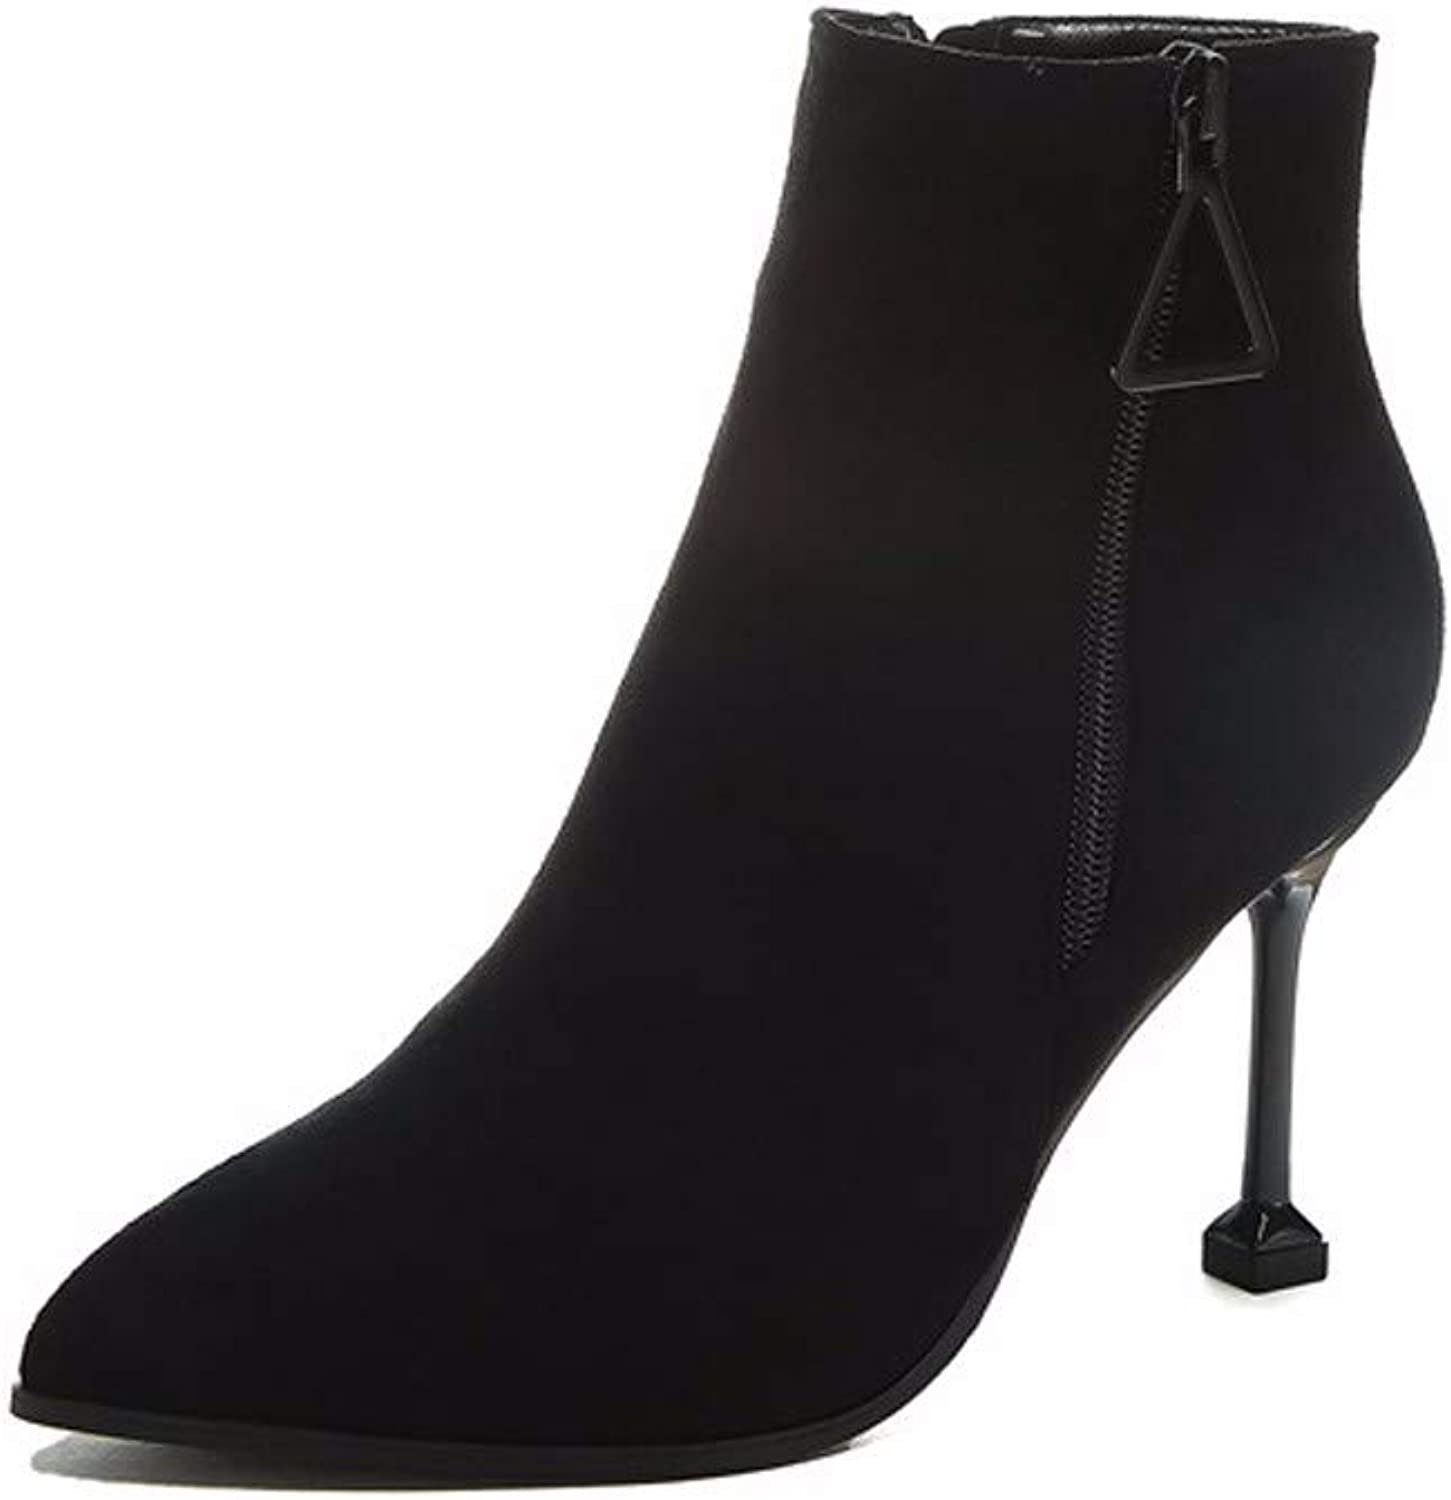 SFSYDDY Popular shoes Sexy Short Boots with High 9Cm Sharp Pointed Fine Heel Suede Zipper Short Tube Ma Dingxue.